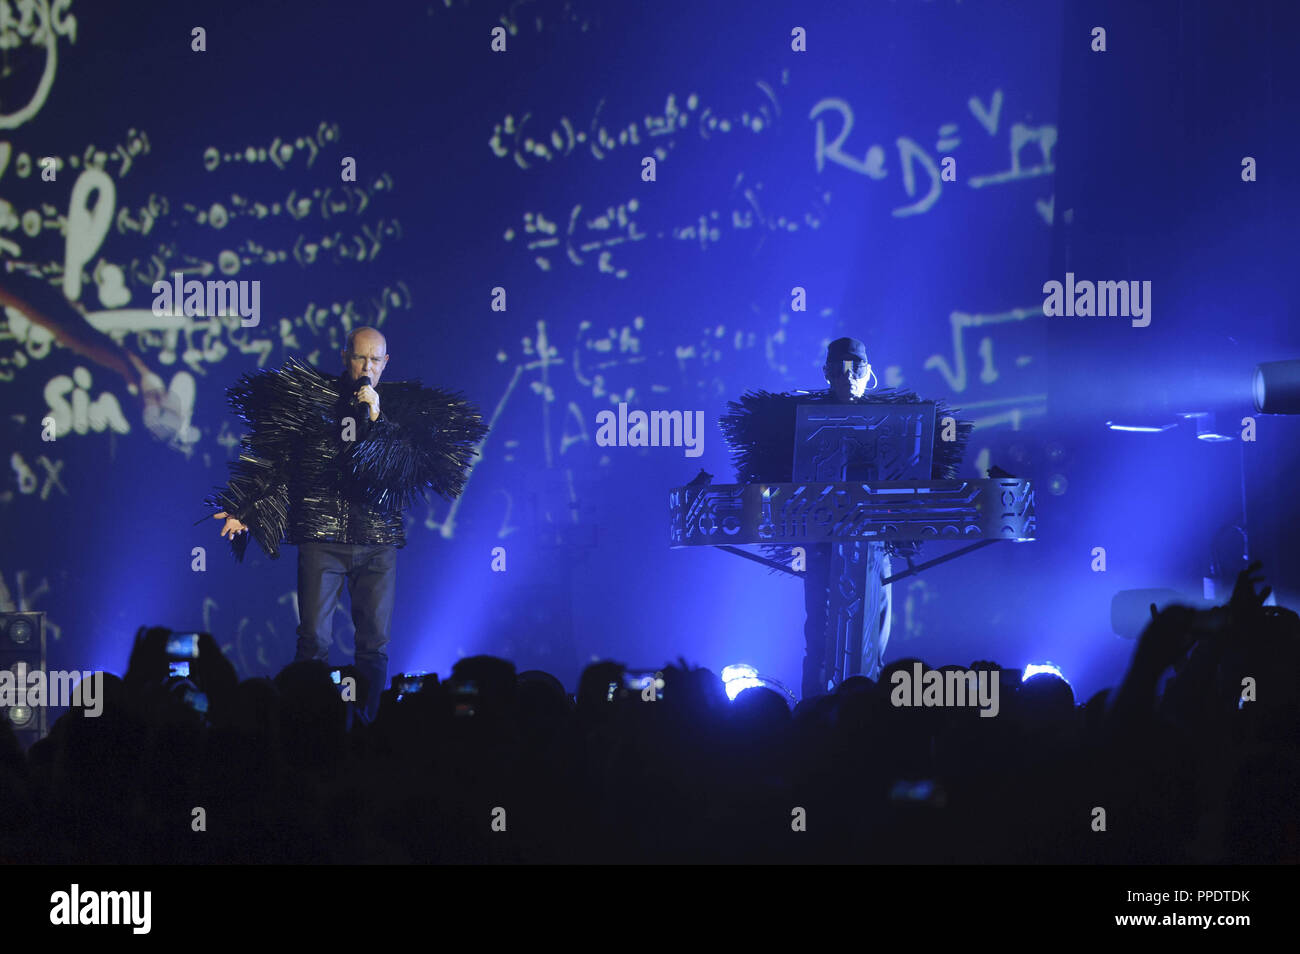 The Pet Shop Boys (Neil Tennant and Chris Lowe) live at the Tollwood Festival in Munich. - Stock Image